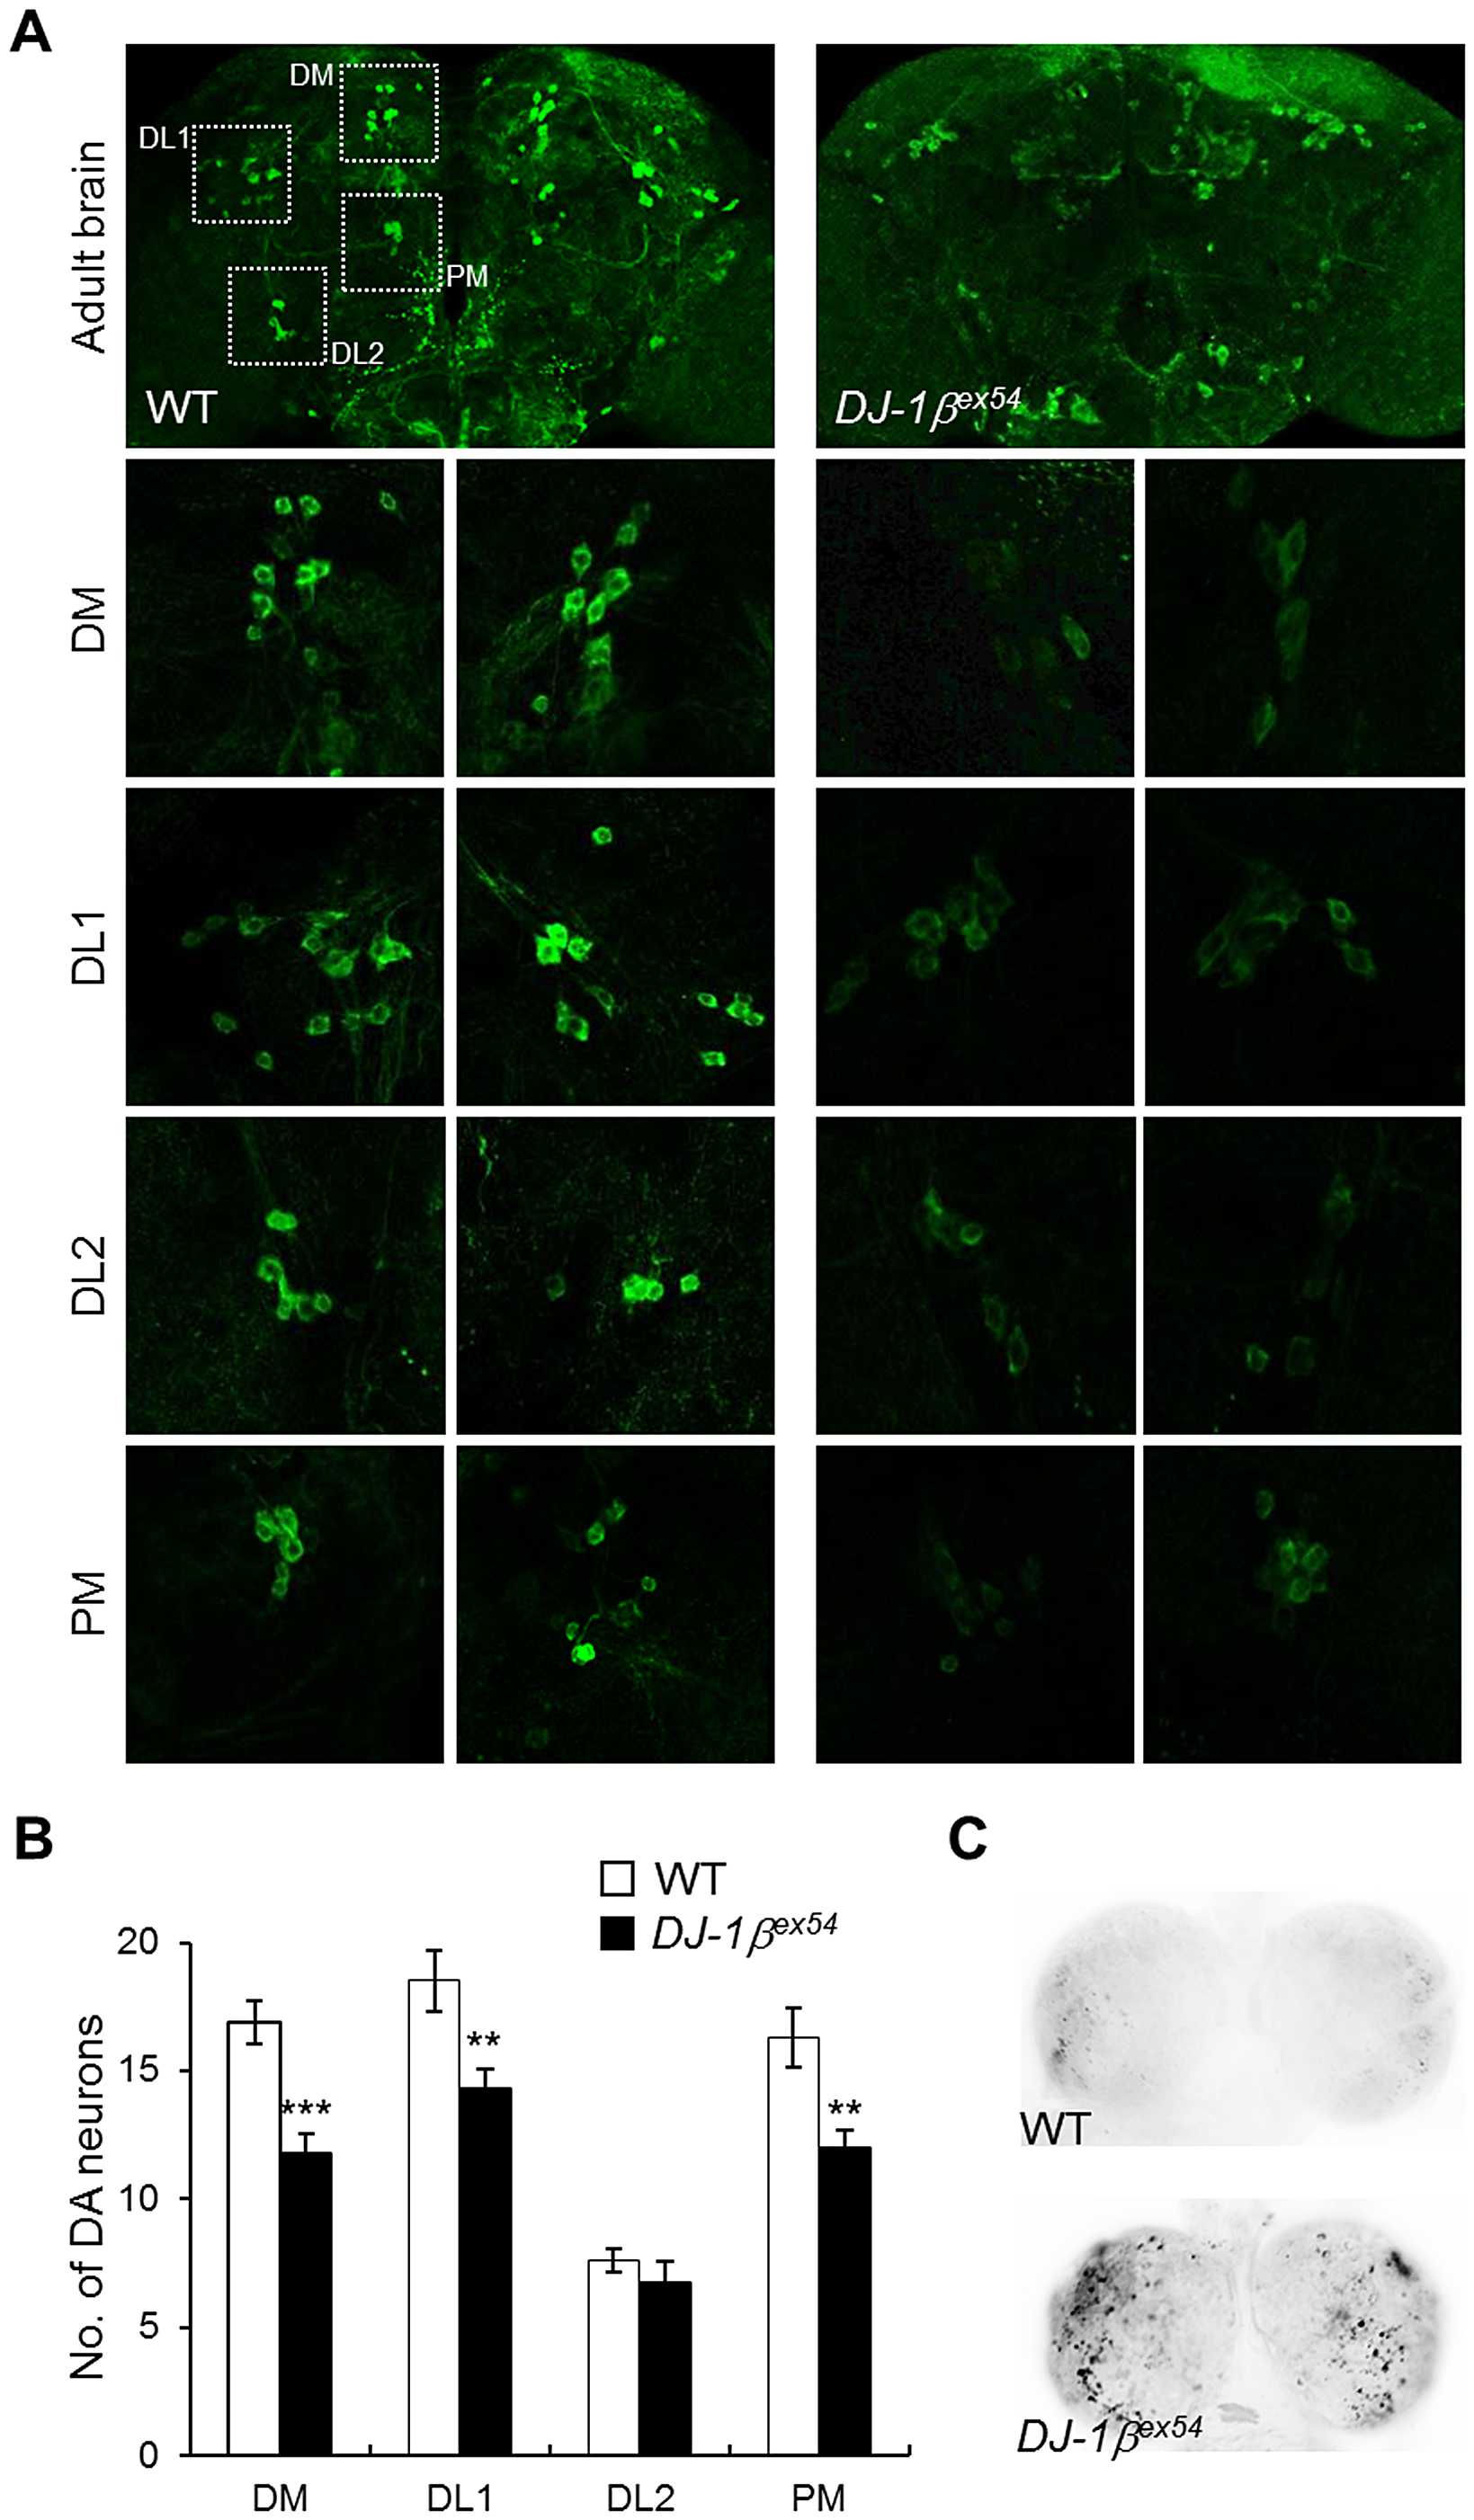 Decreased DA neurons and increased apoptosis in <i>DJ-1β</i> mutant under oxidative stress conditions.